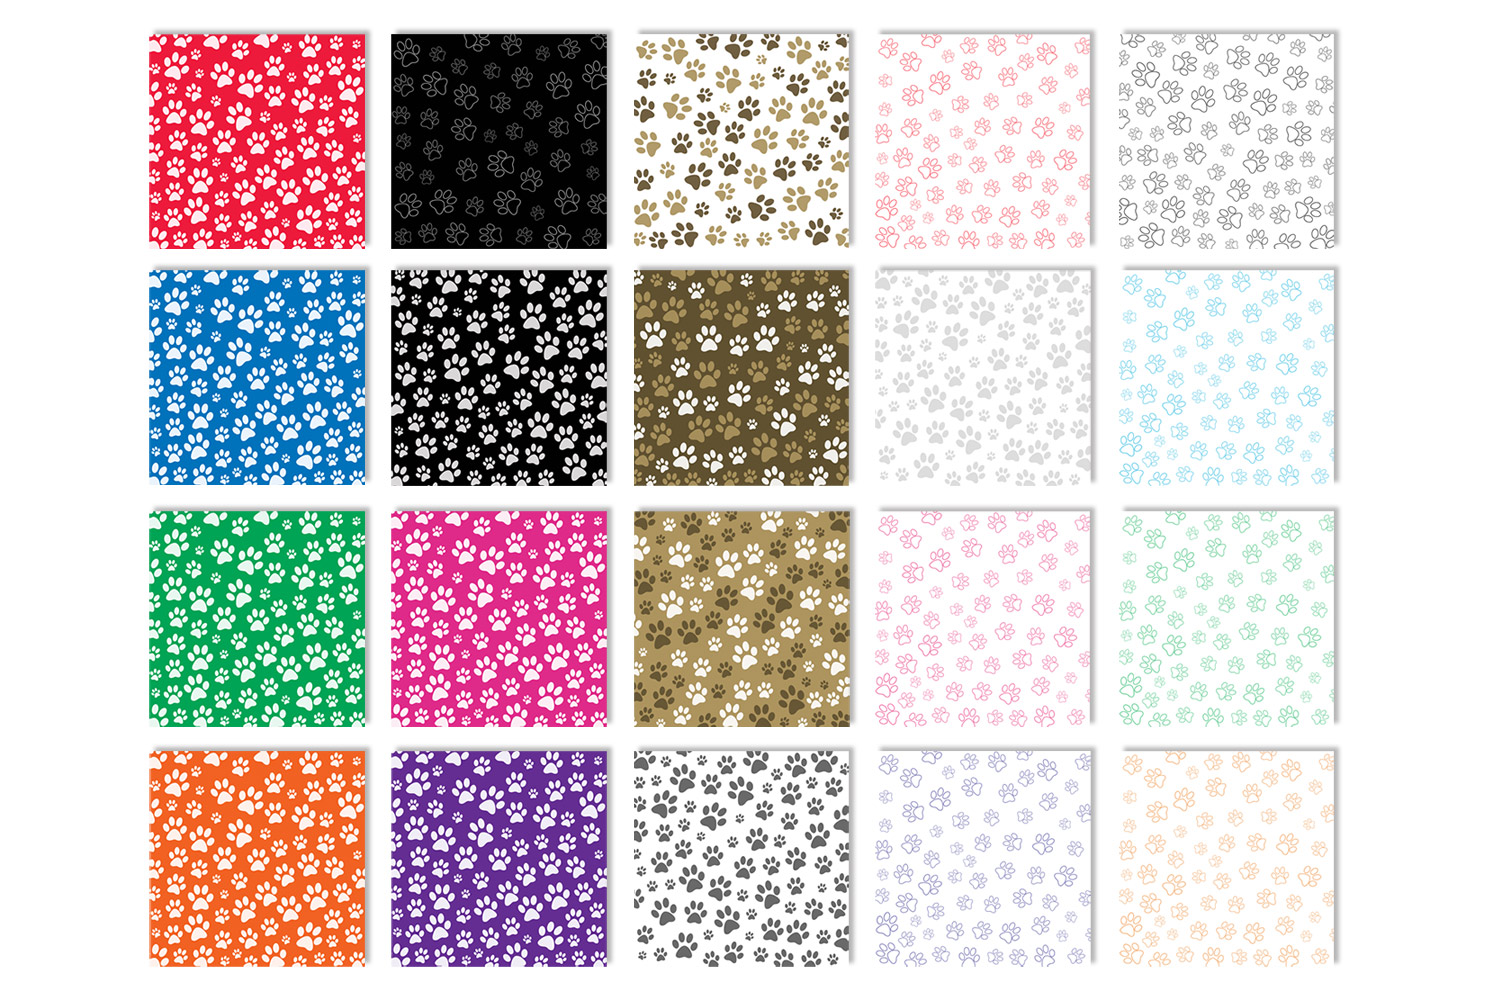 Paw Print Backgrounds - Animal Paw Print Digital Papers example image 2